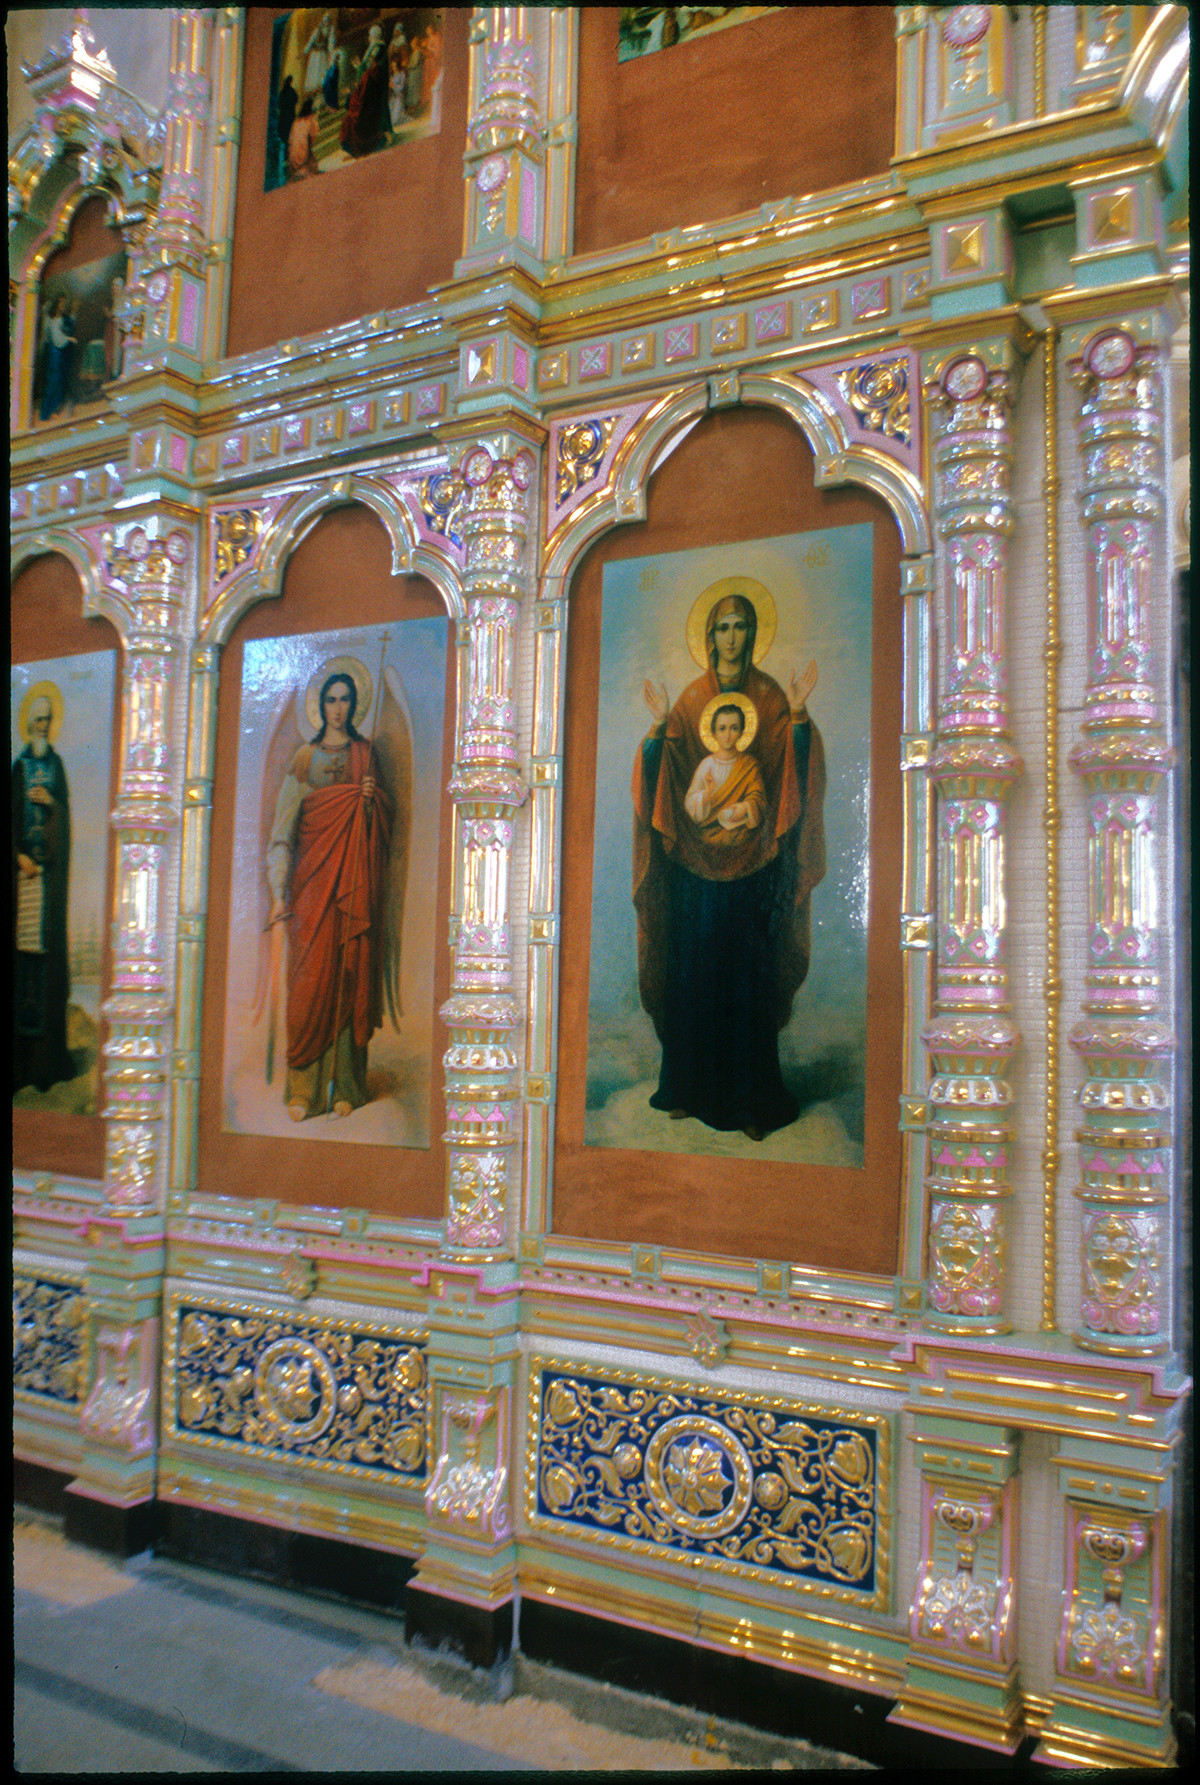 Cathedral of Elevation of the Cross. Rebuilt ceramic icon screen with temporary icon reproductions. August 27, 1999.